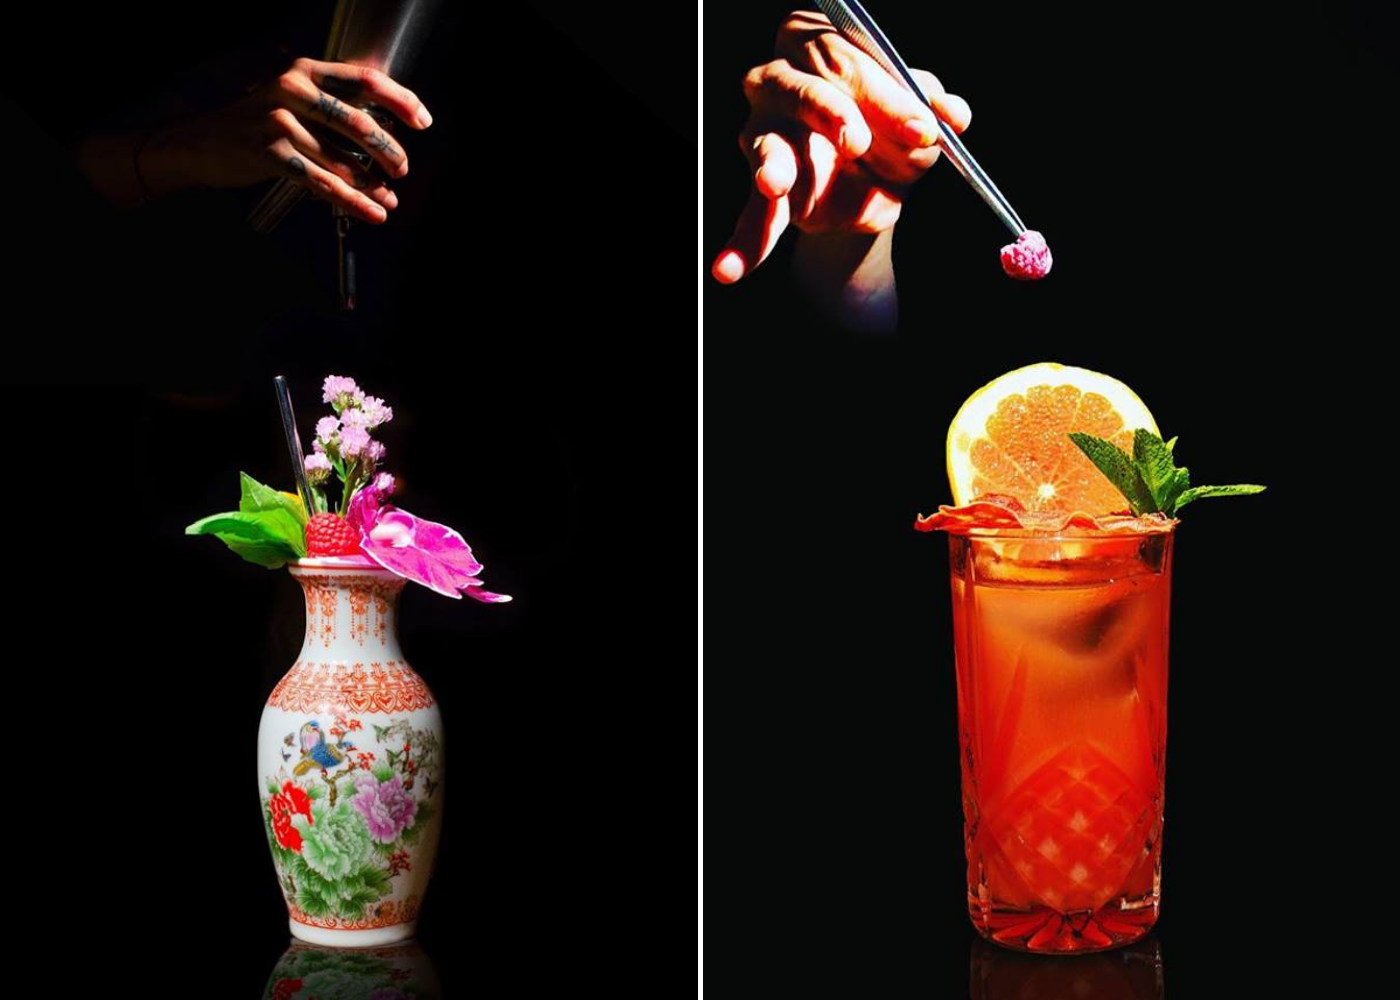 Cocktail bars in Singapore: The Other Room